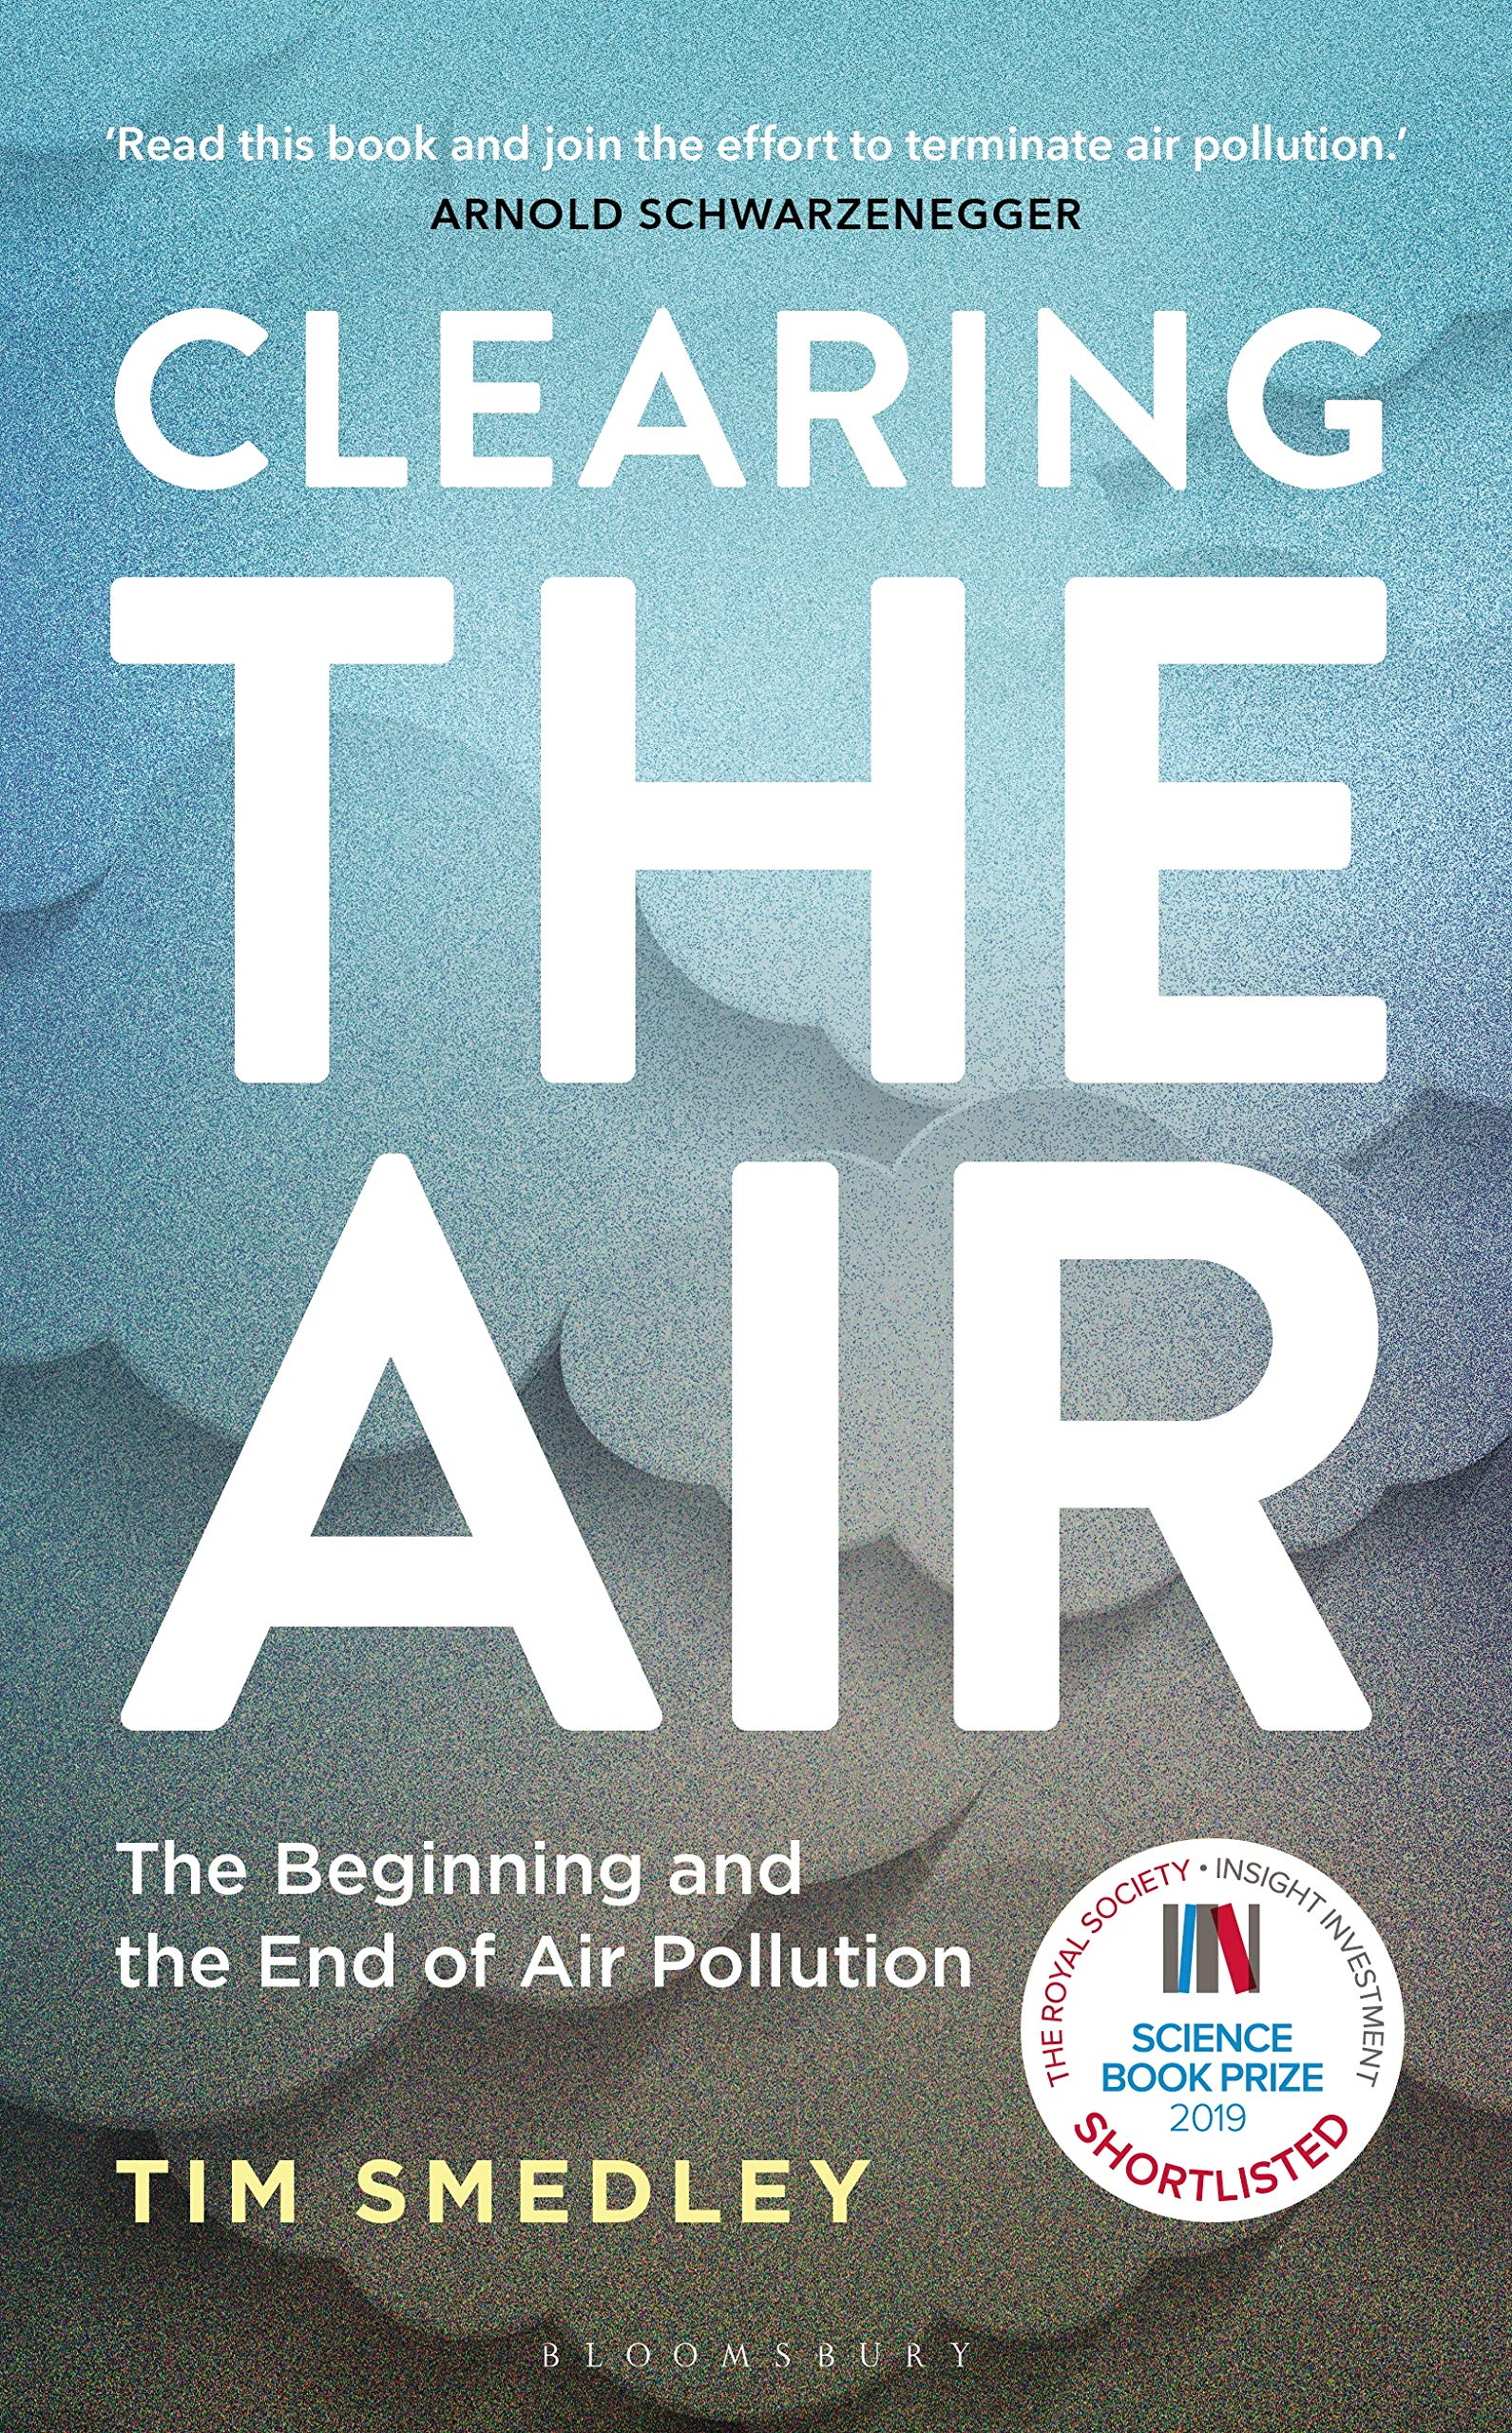 Clearing the Air: SHORTLISTED FOR THE ROYAL SOCIETY SCIENCE BOOK PRIZE  2019: Smedley, Tim: 9781472953315: Amazon.com: Books